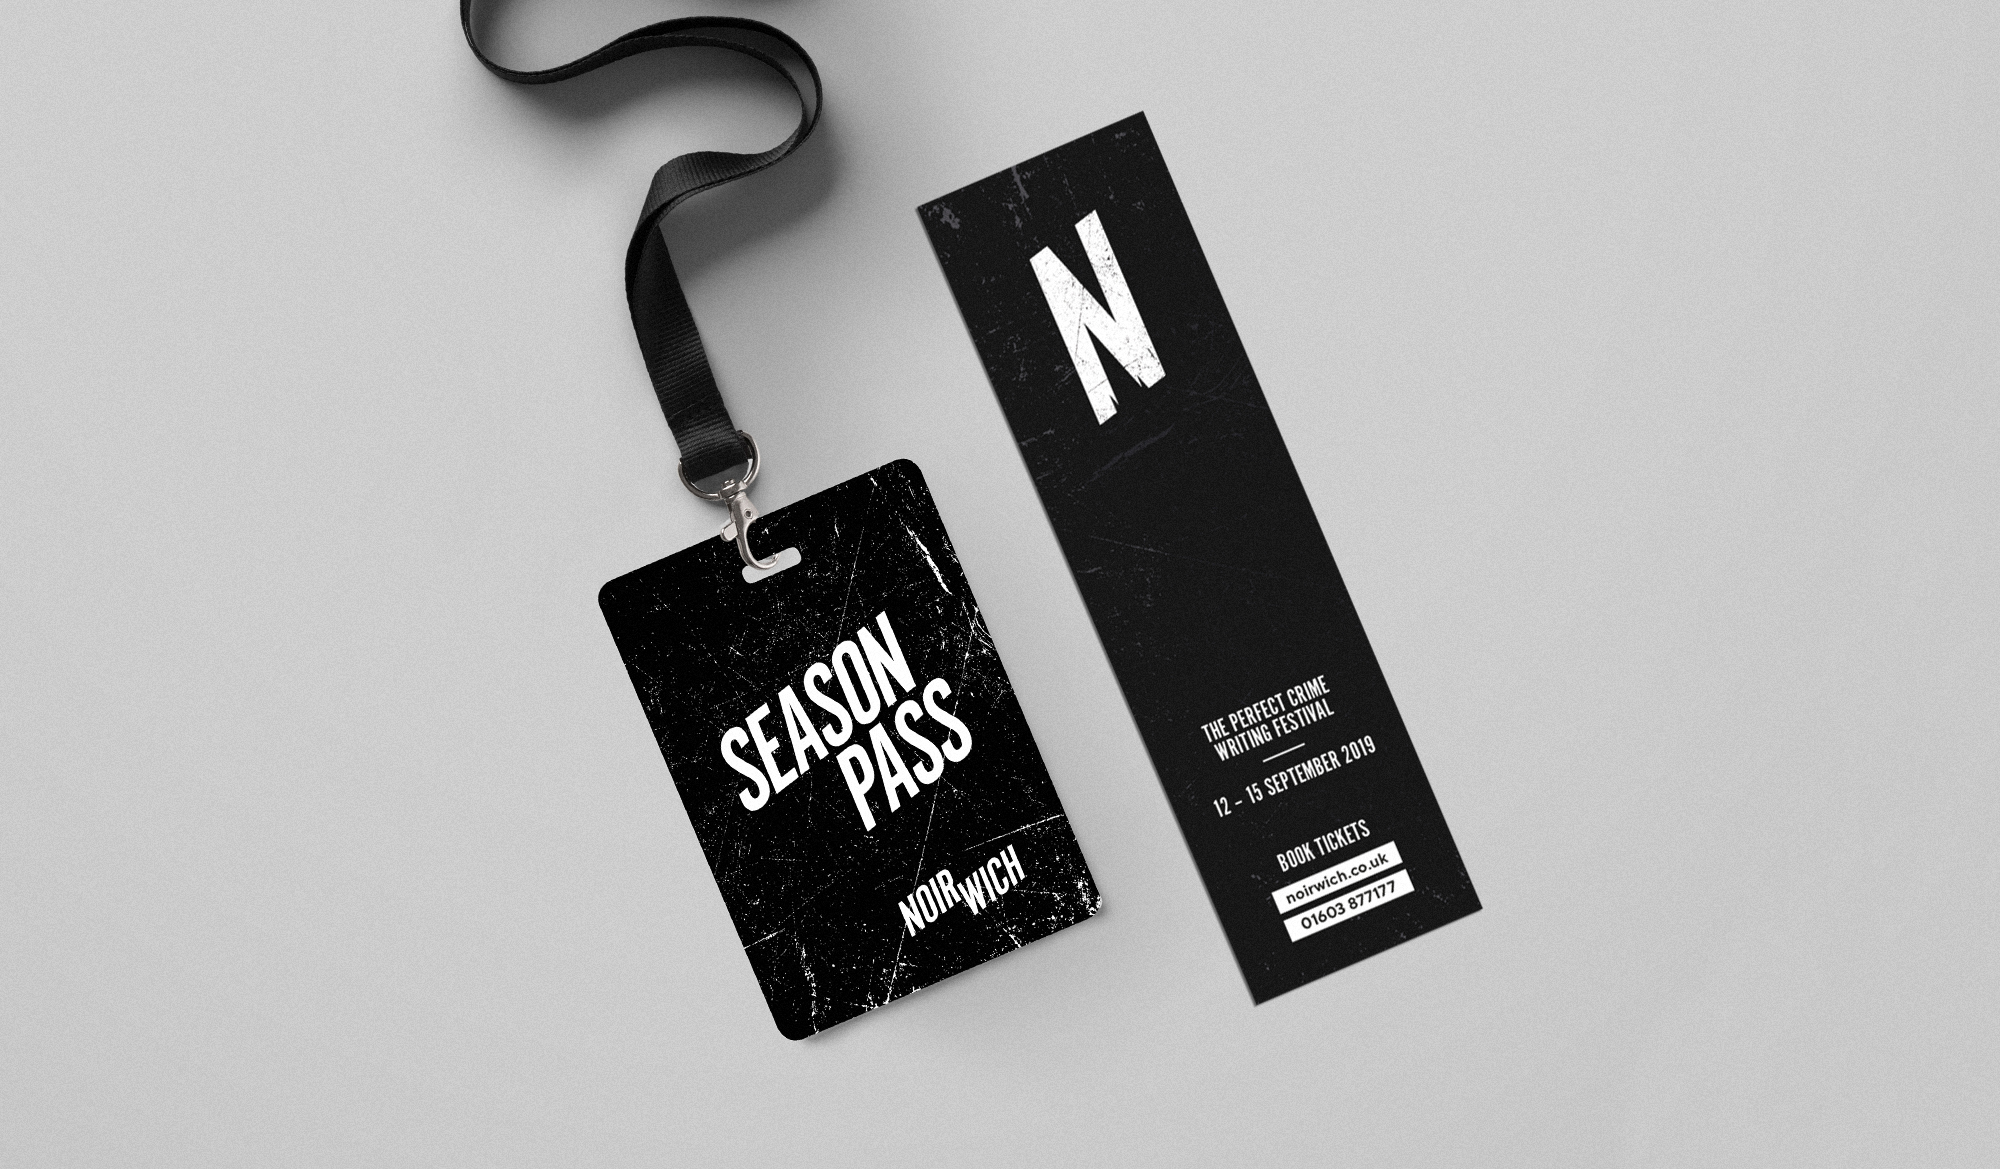 Noirwich season pass and bookmark branding